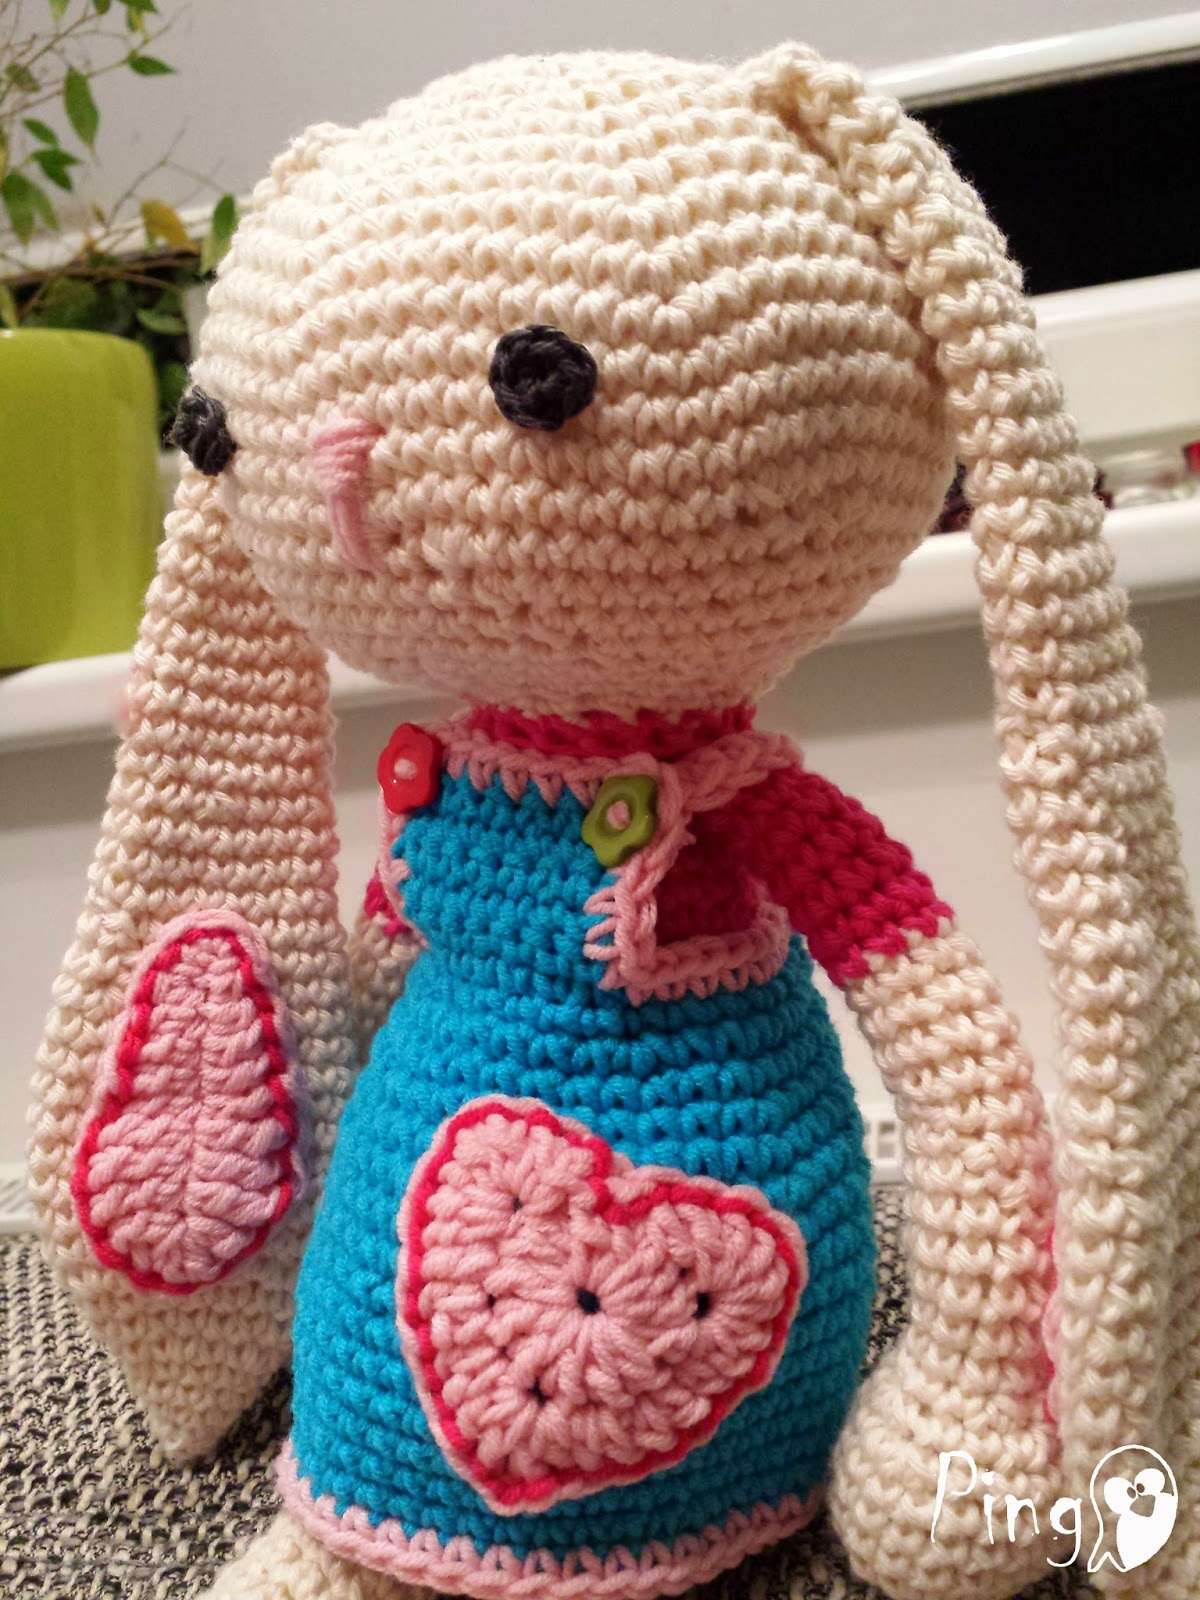 Emmy Bunny crochet pattern by Pingo - The Pink Penguin